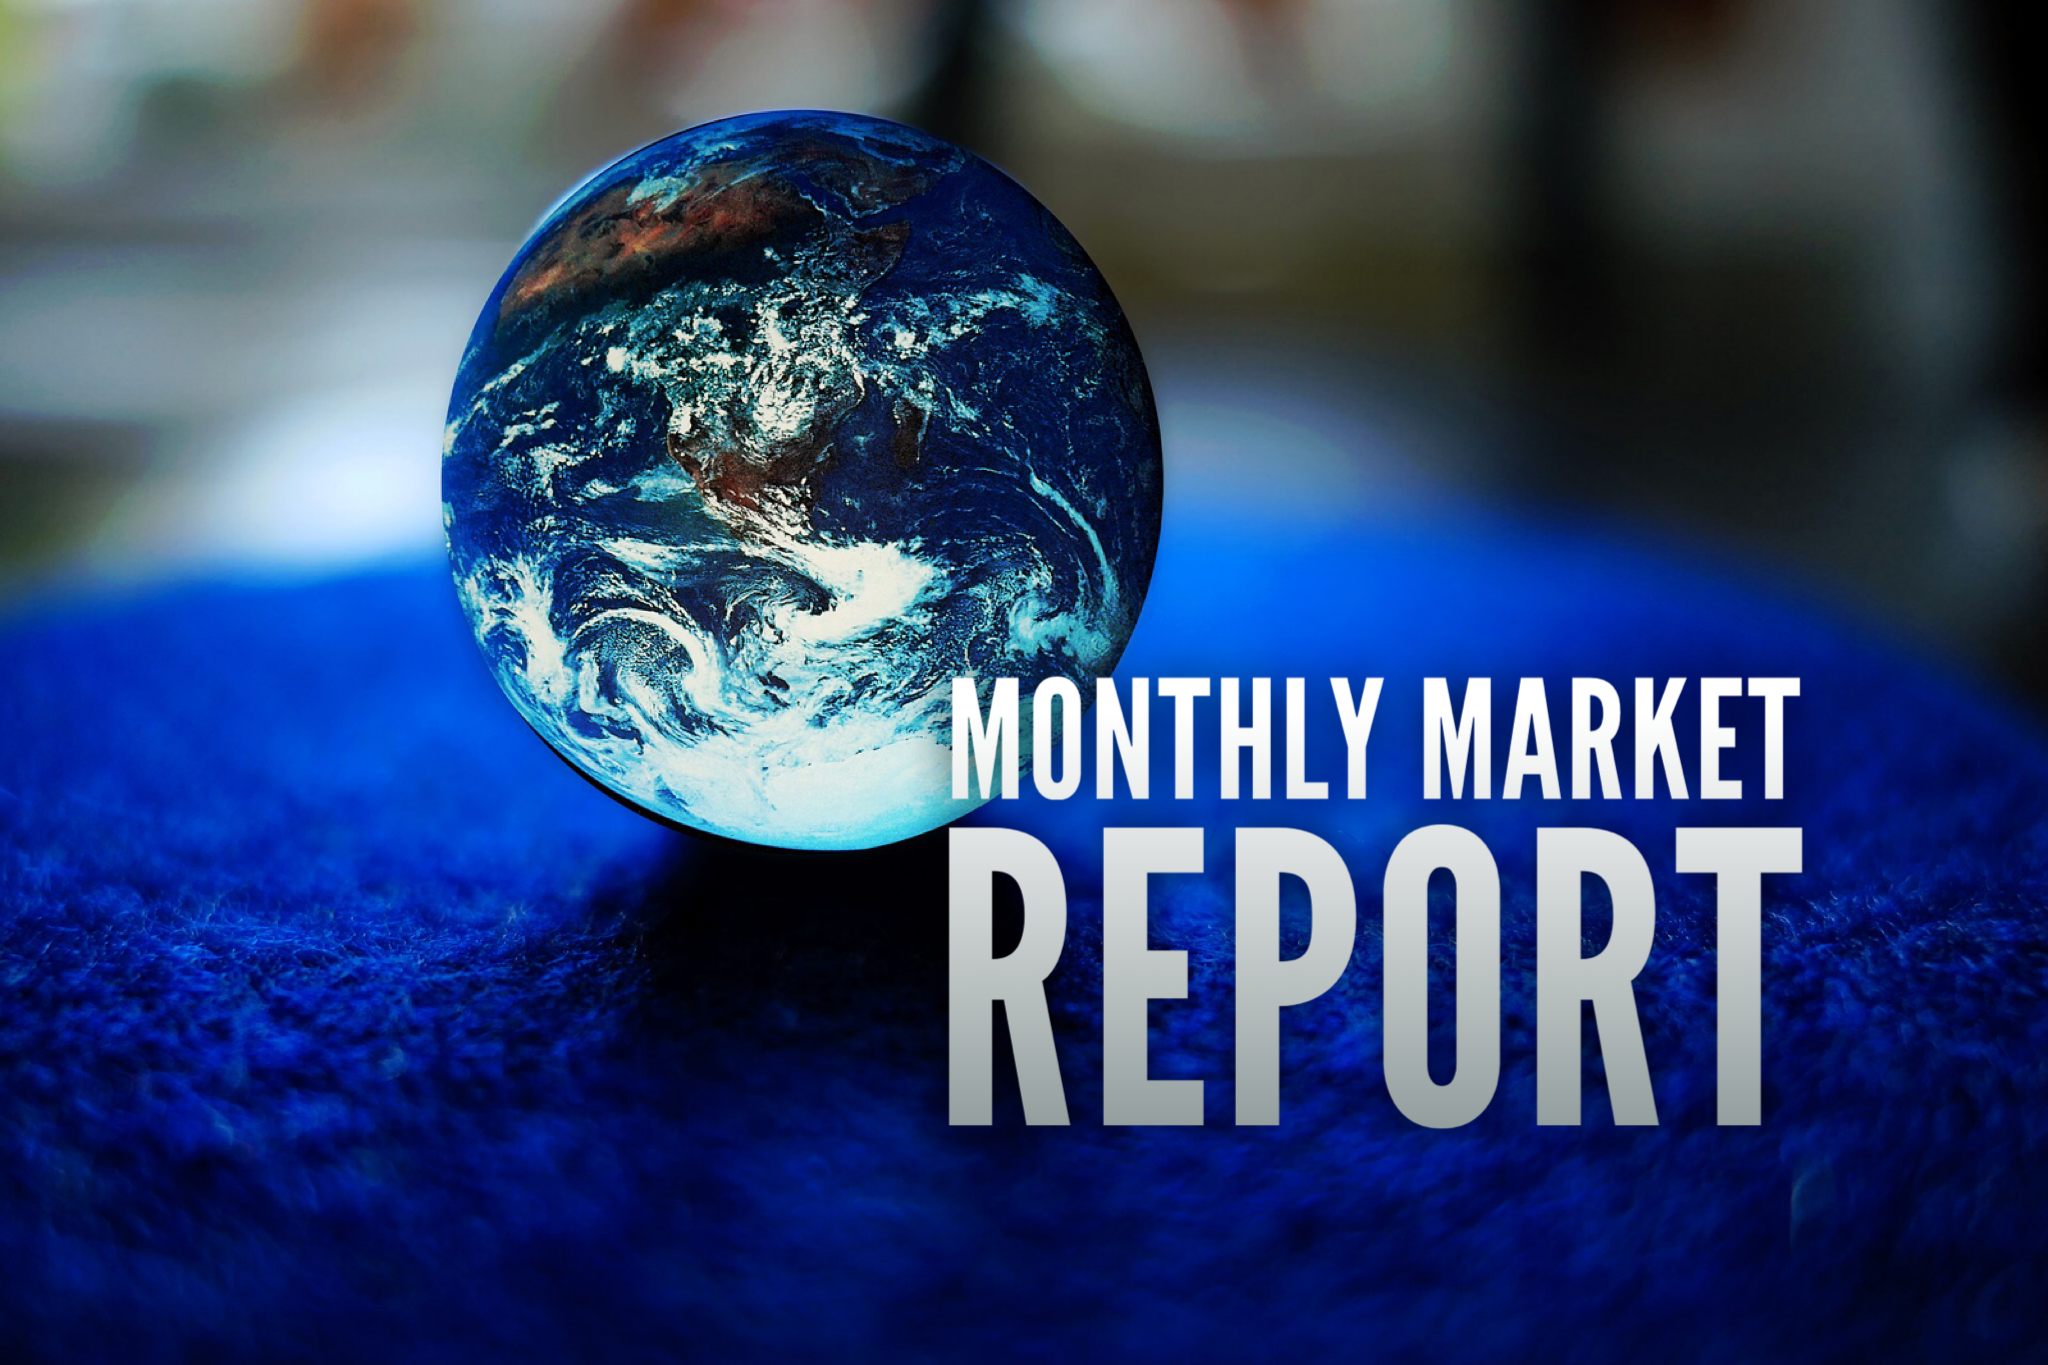 MARKET REPORT: April 2017